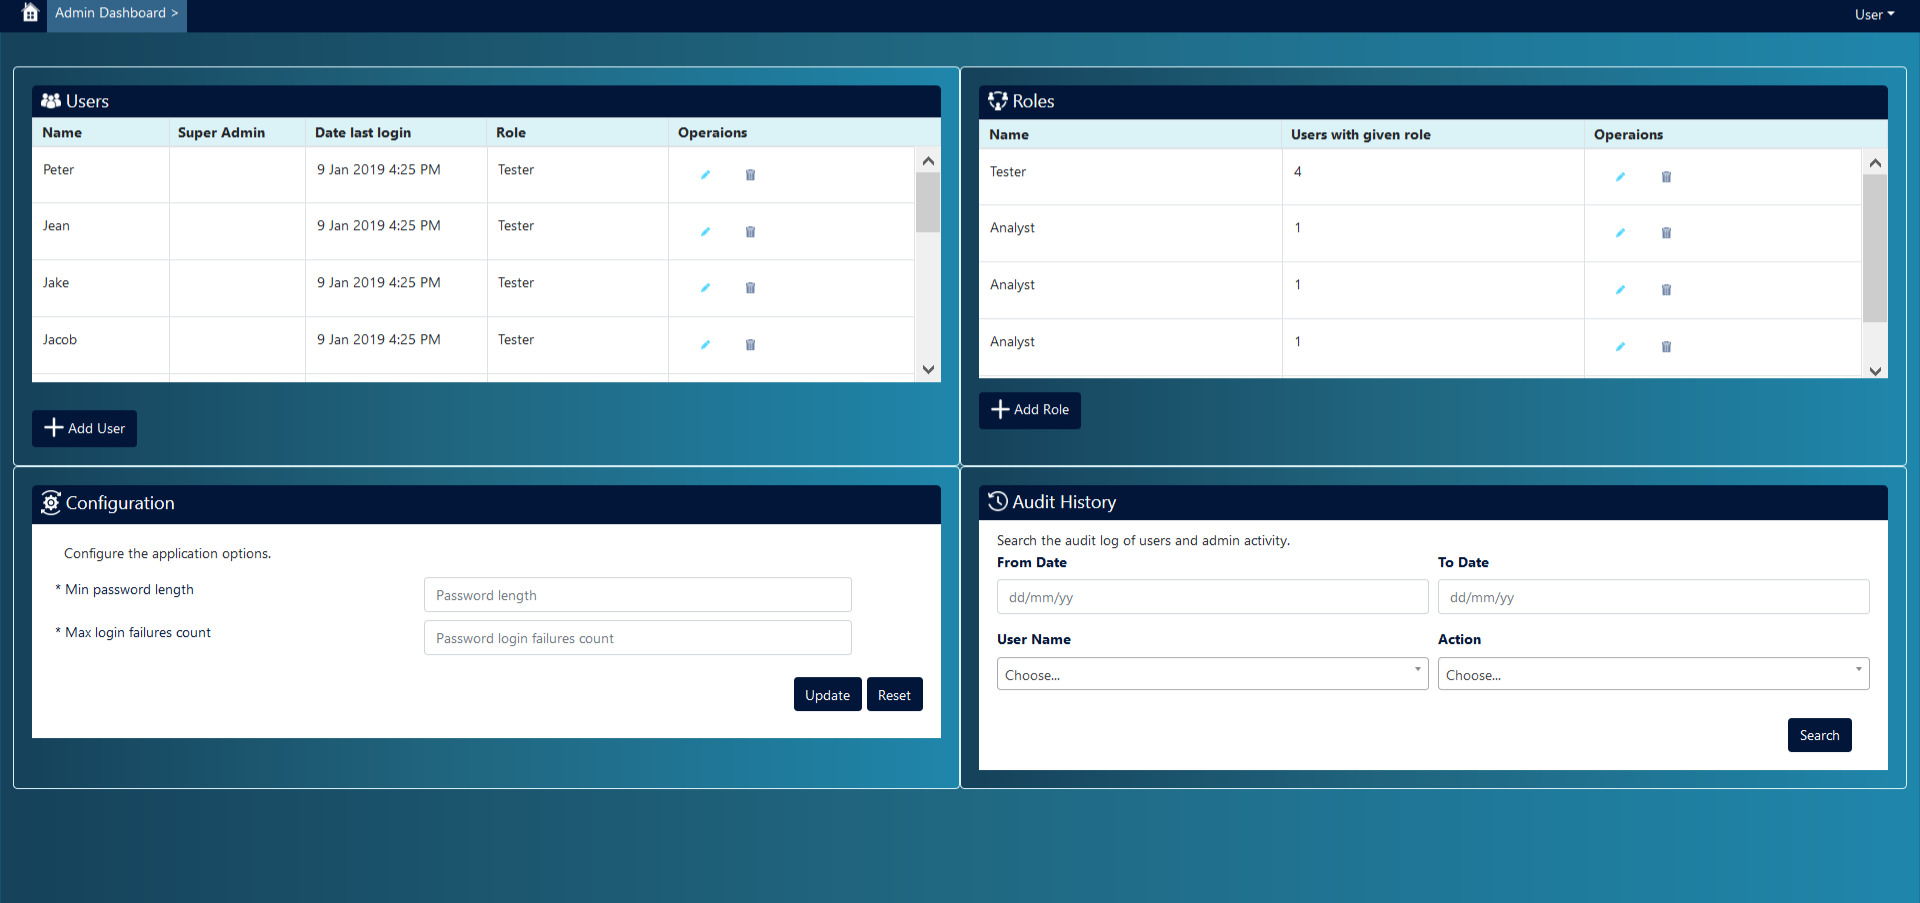 Triple-S™ admin dashboard example